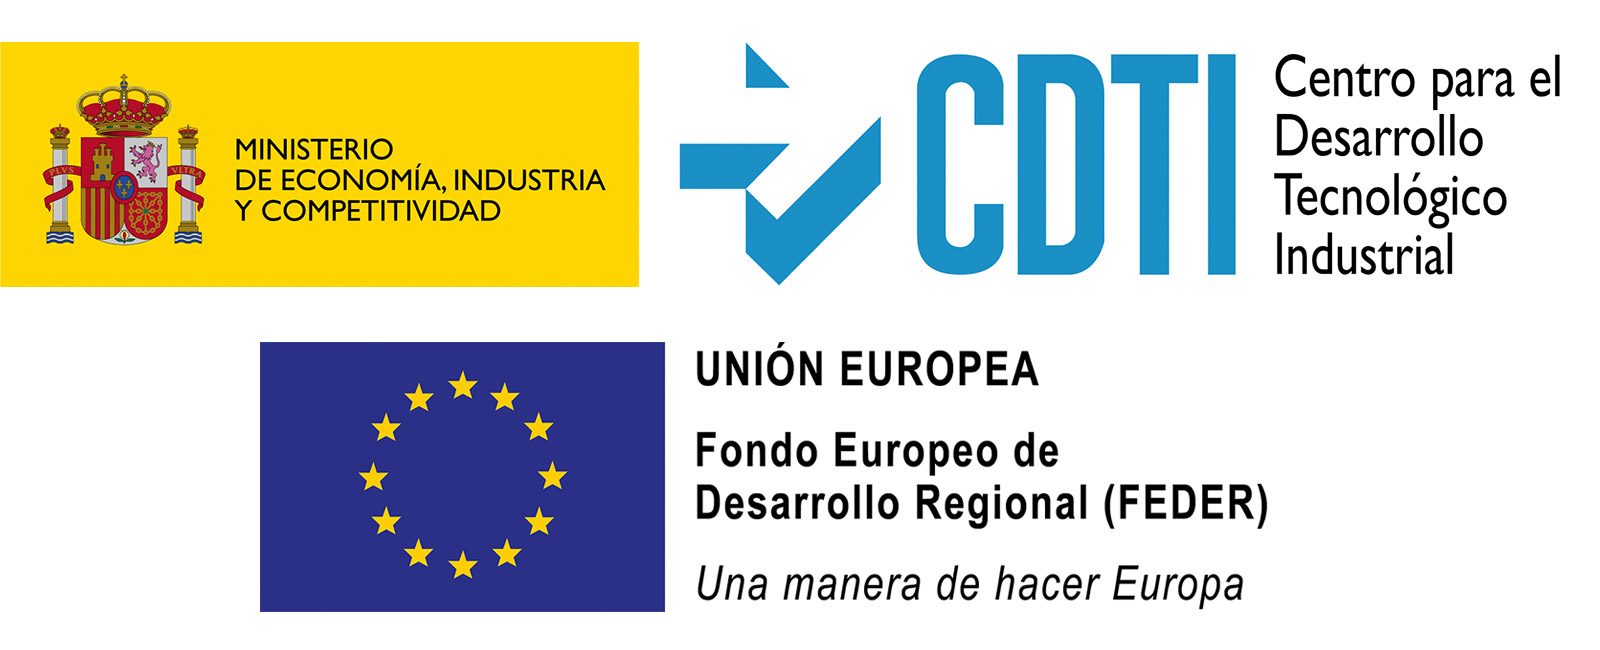 Vlc Photonics News Services Integrated Circuit Technologies Co Financed With The European Regional Development Fund Edrf And Support Of Spanish Centre For Industrial Technology Cdti